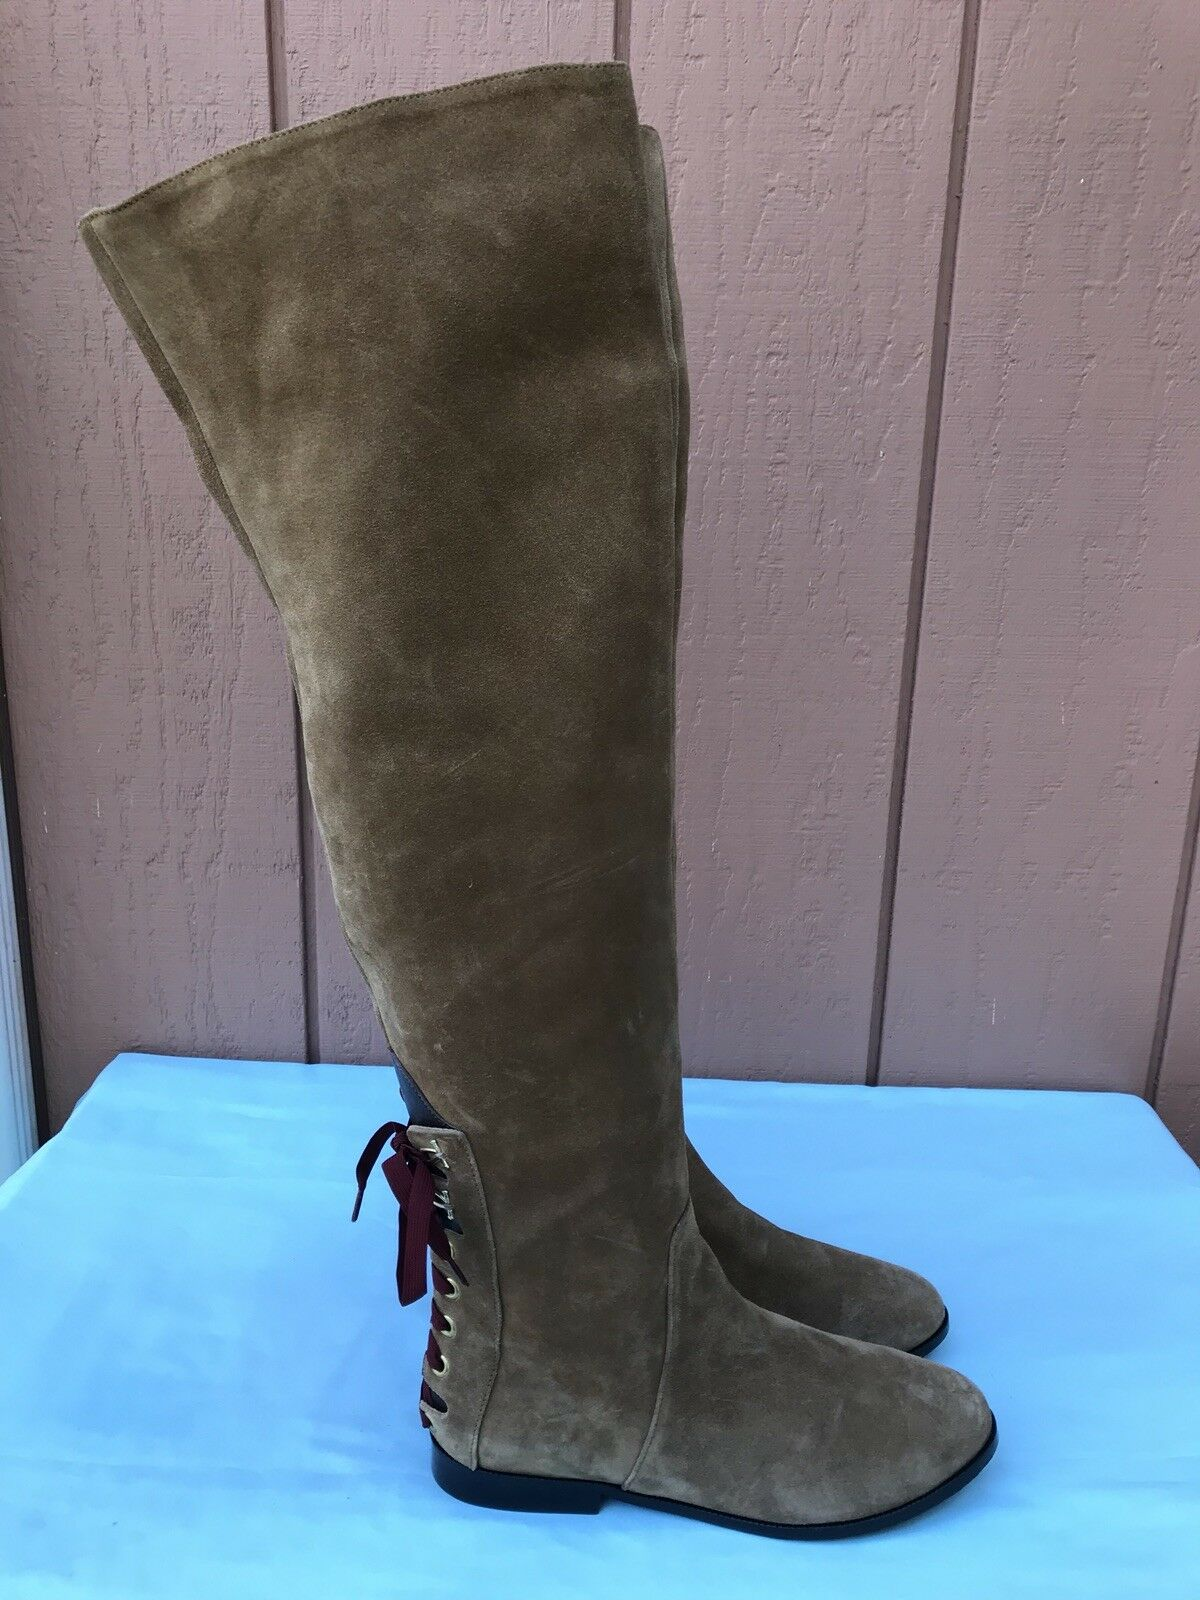 1195 NEW Sonia Rykiel Brown Suede 20  Over The Knee Fashion Boots A9 RARE